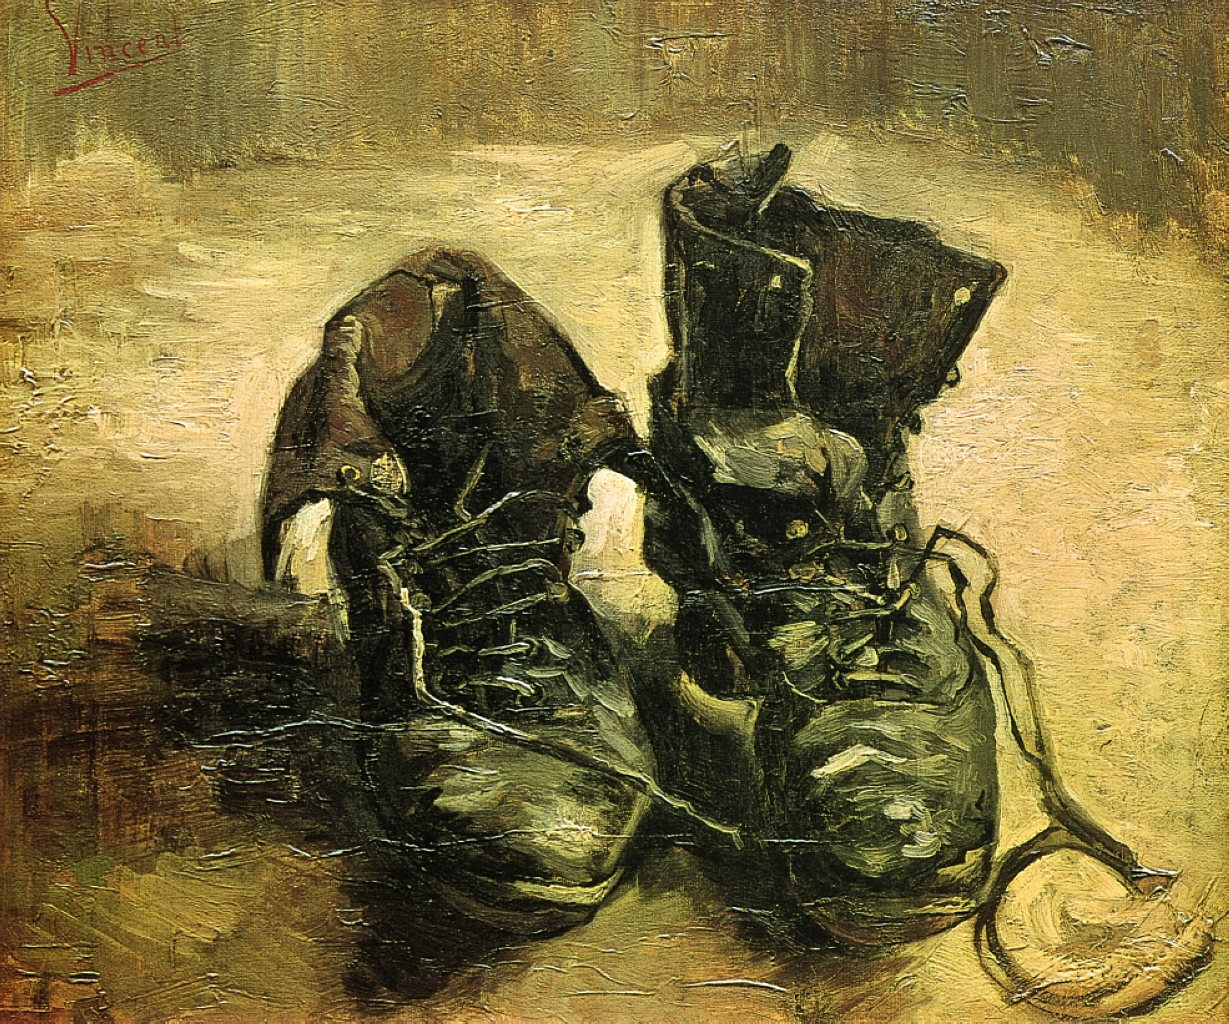 A Pair of Shoes, Vincent Van Gogh 1886